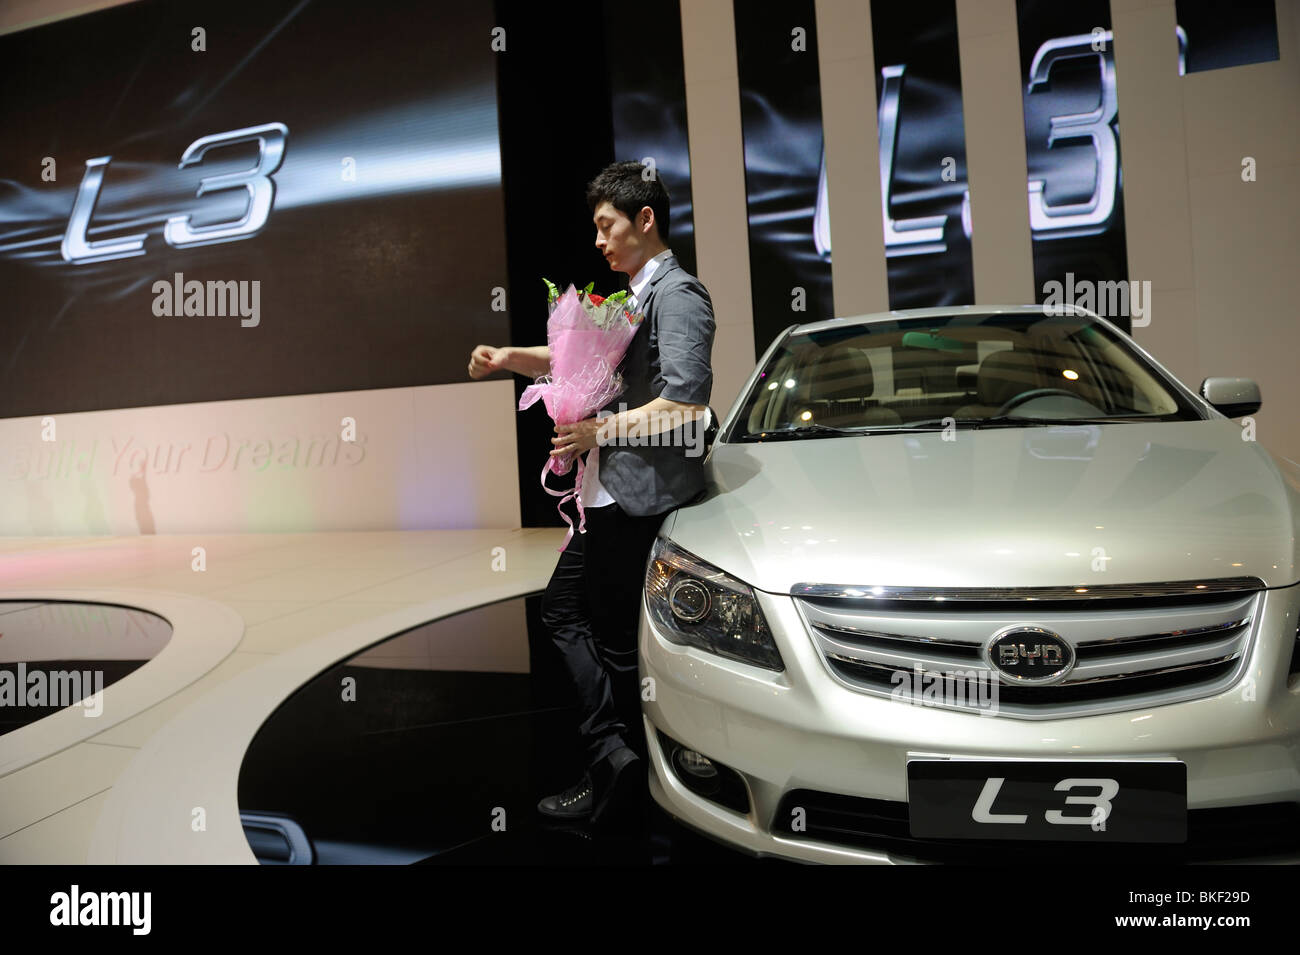 BYD L3 sedan at the Beijing Auto Show in Beijing. 24-Apr-2010 - Stock Image